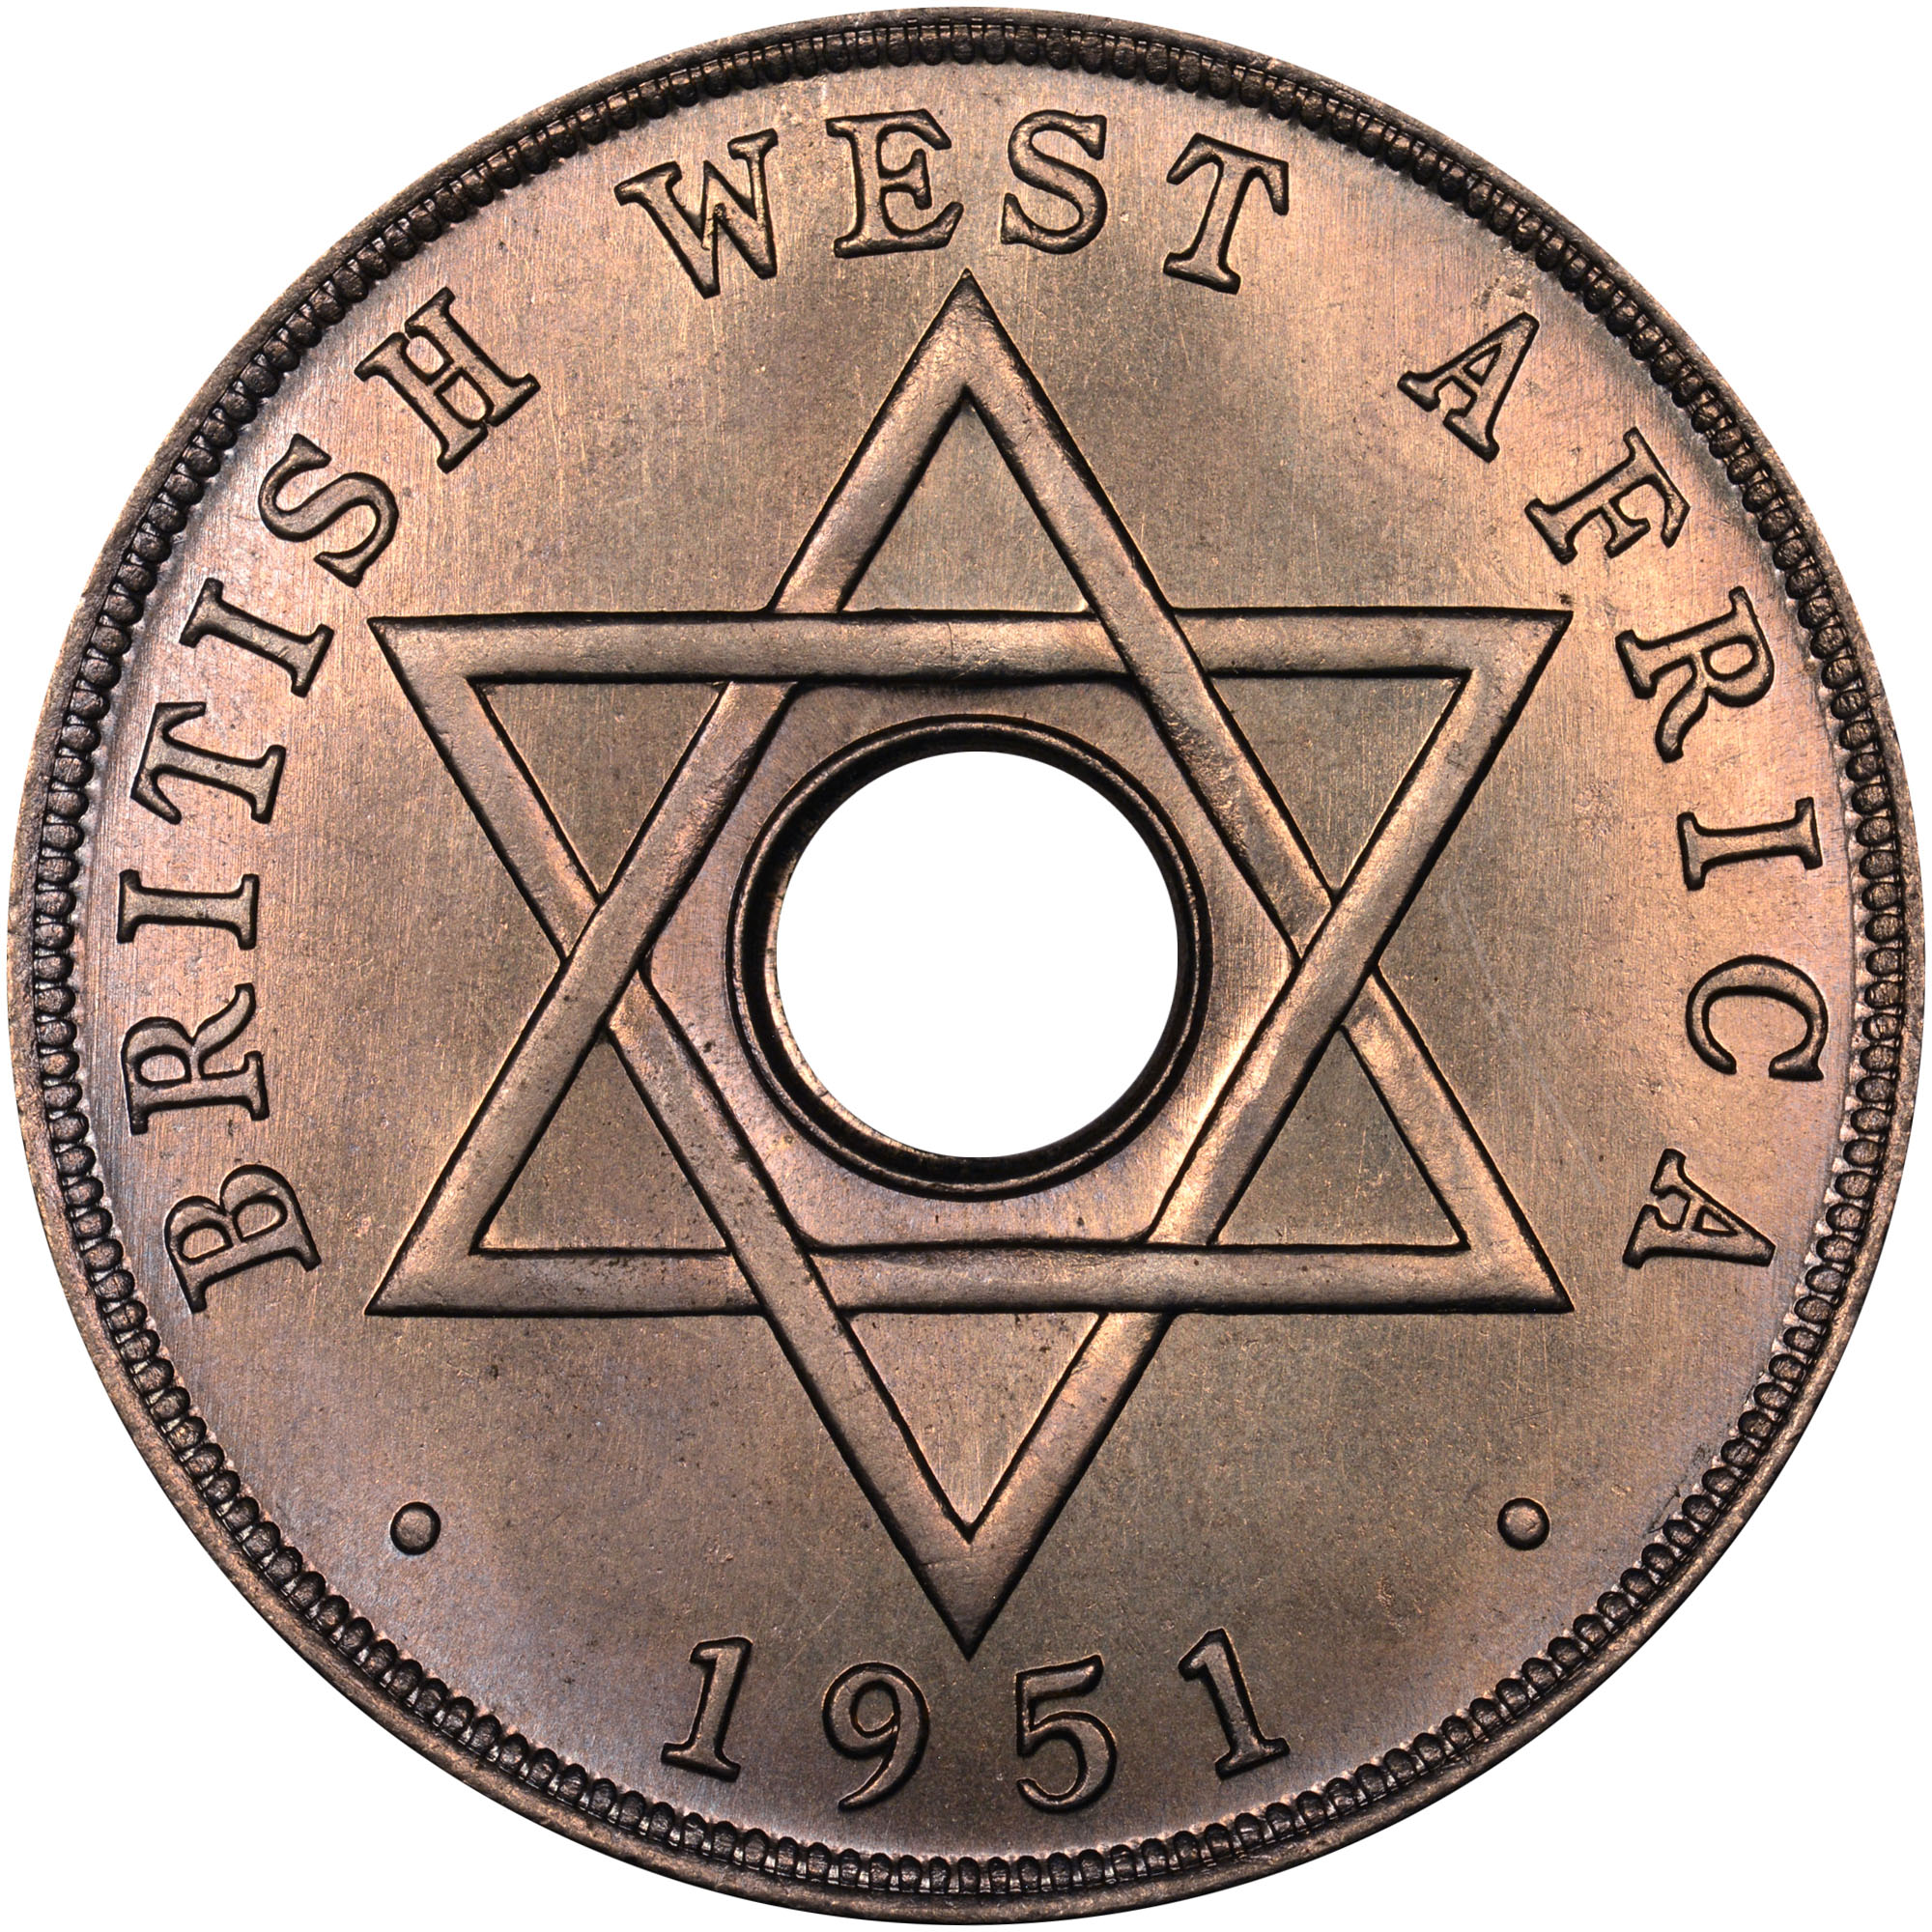 1951 British West Africa Penny reverse